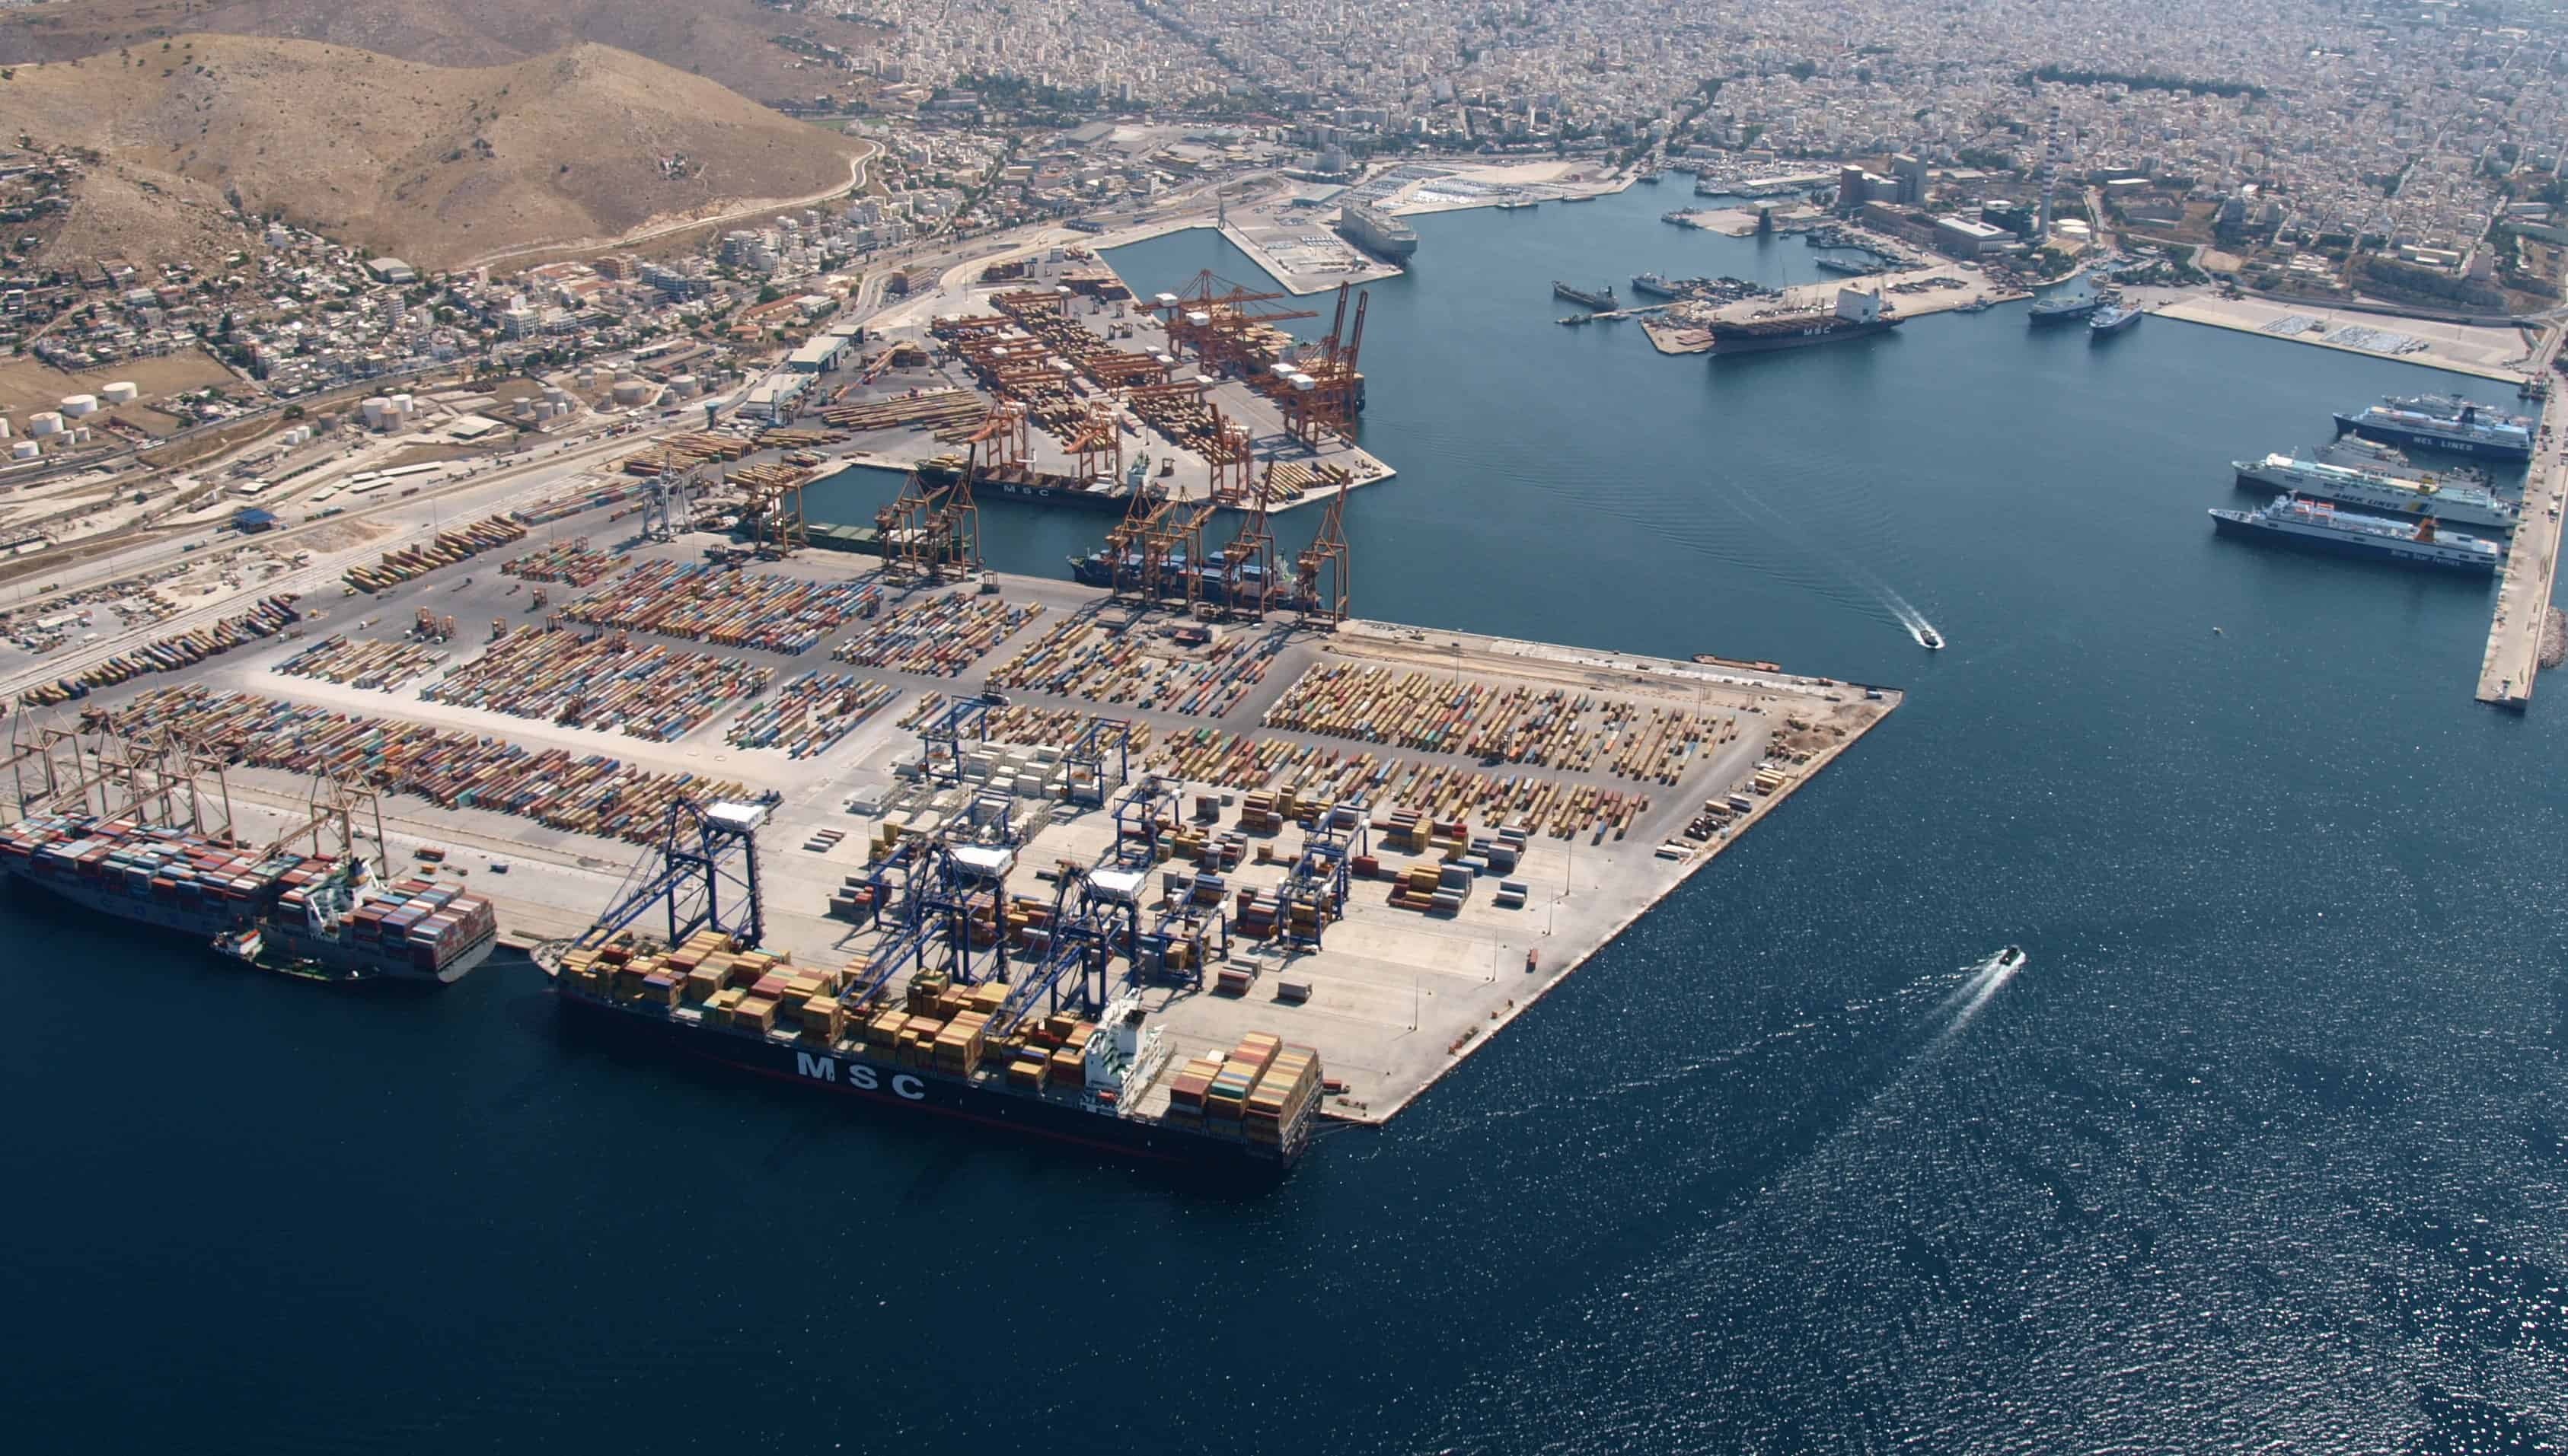 COSCO Pacific is sole bidder for Piraeus Port Authority